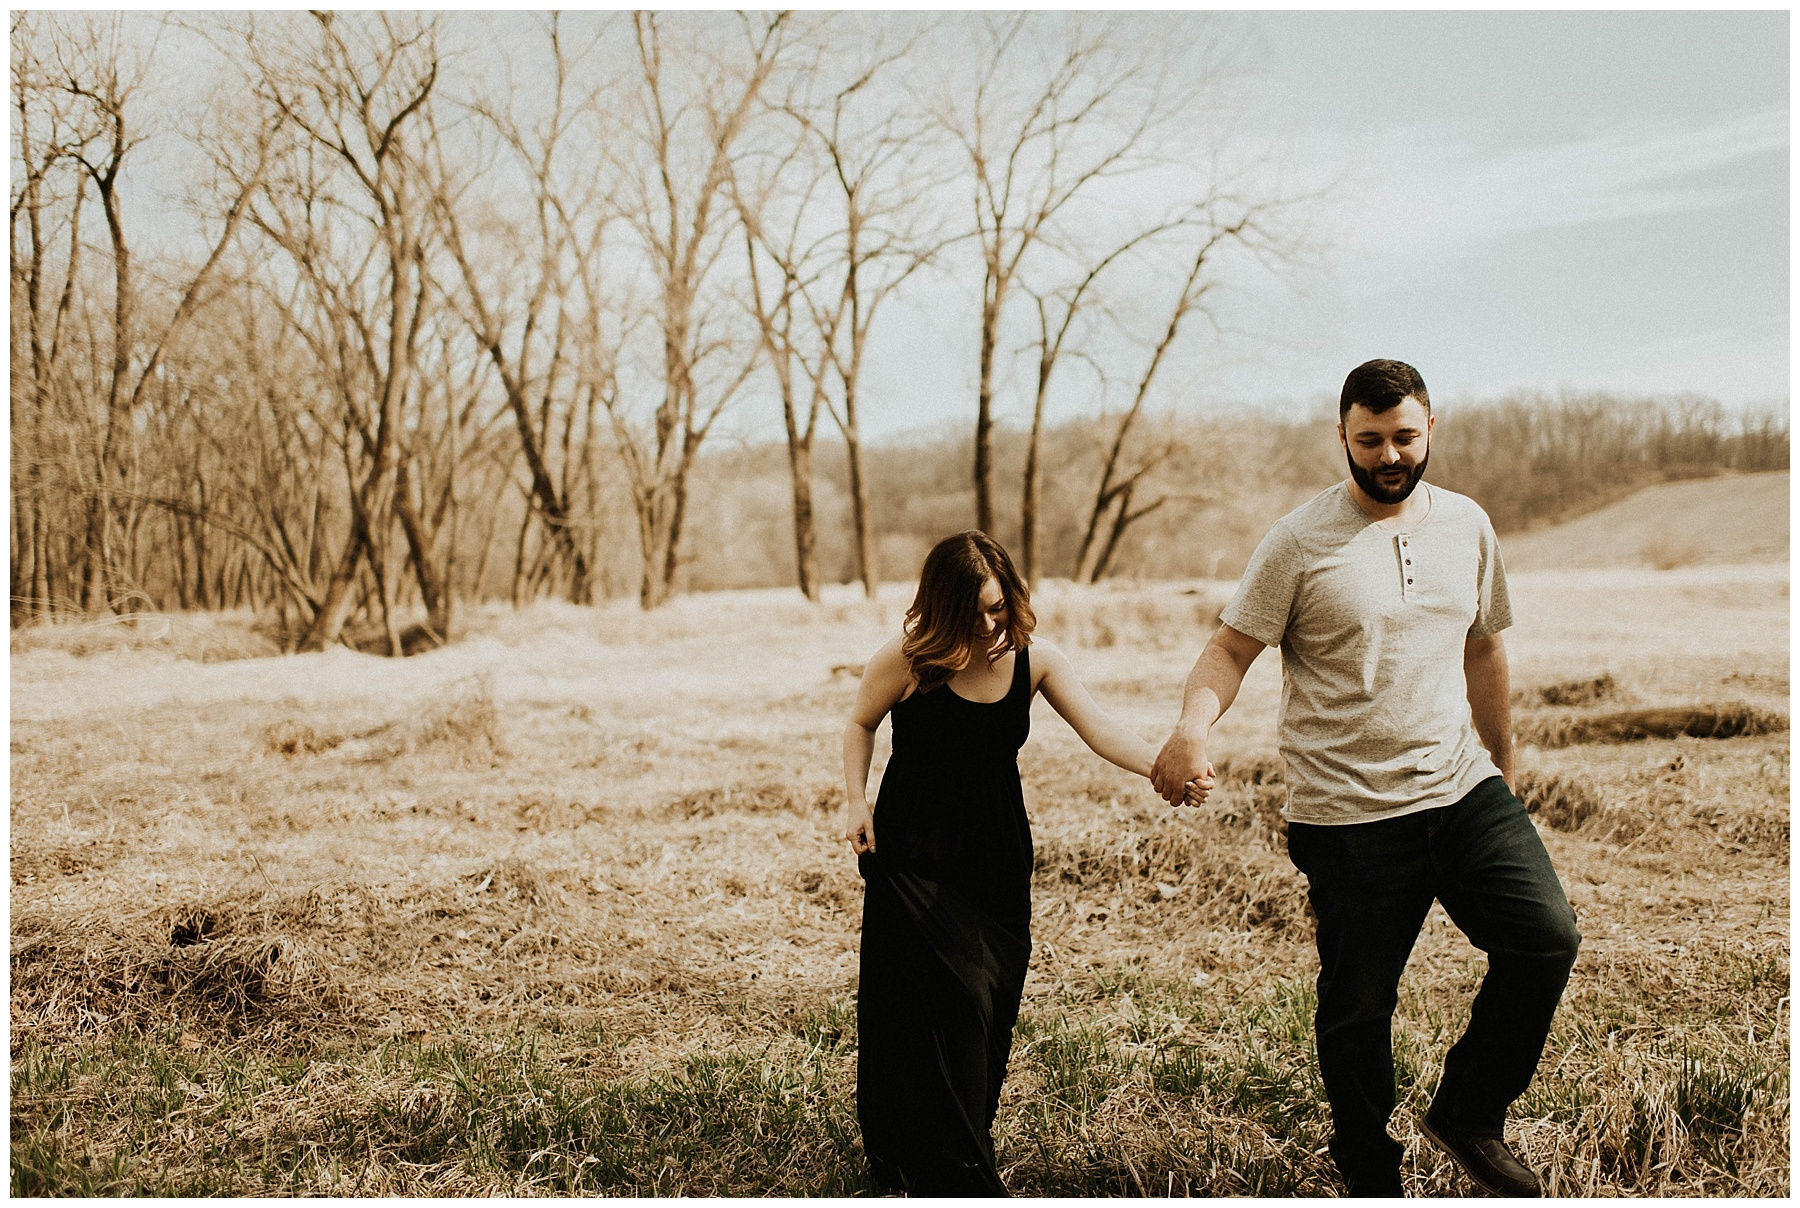 Charlie + Tiffany    Engagements in the woods – Lauren F.otography 38ce843bc7ca0